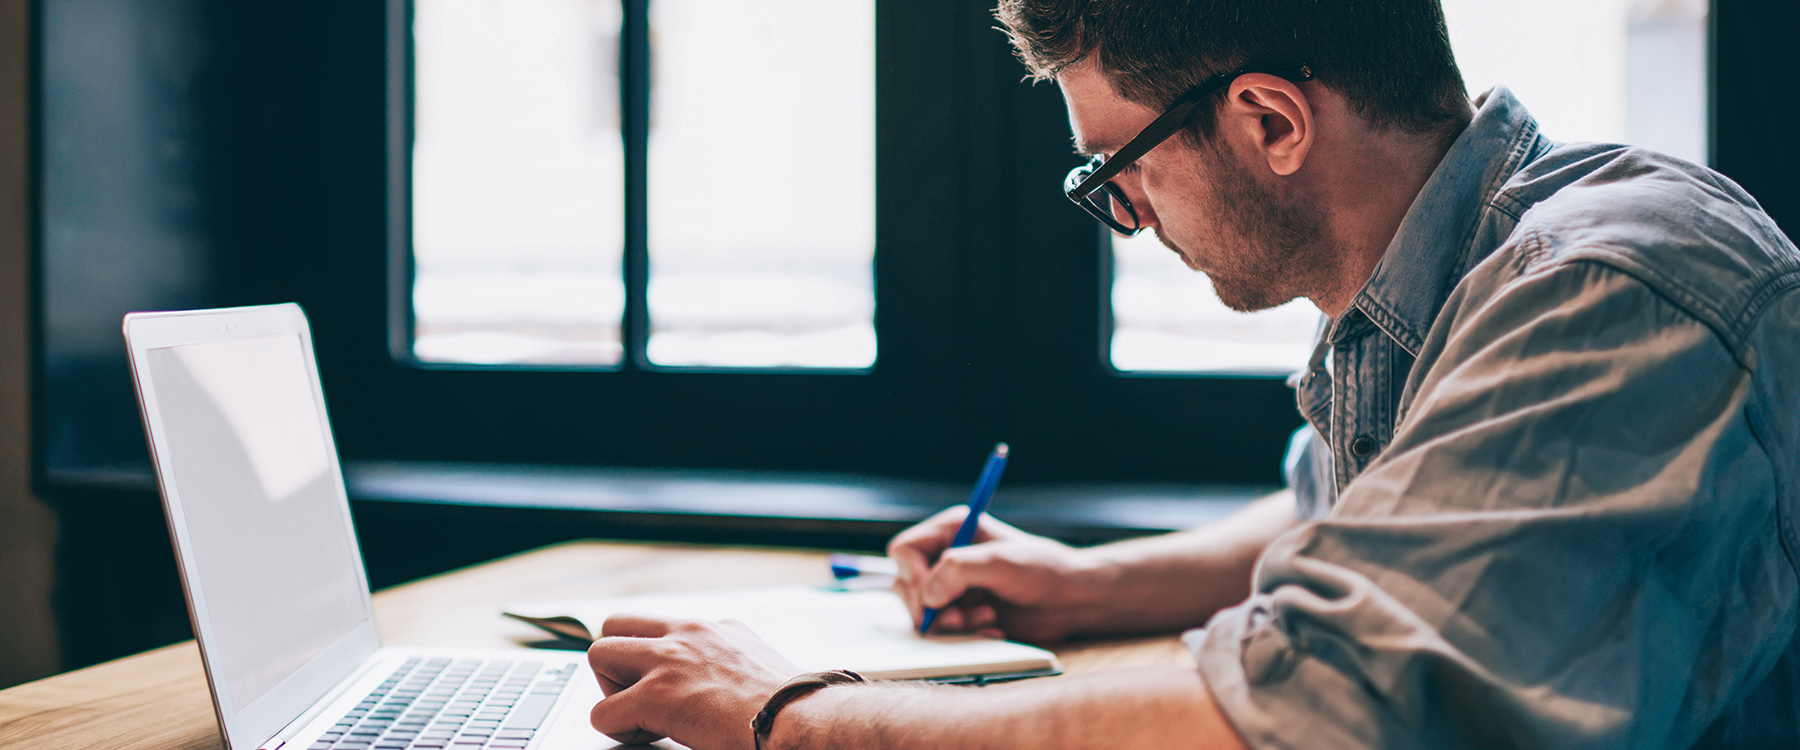 Man writing list of to dos while consulting laptop